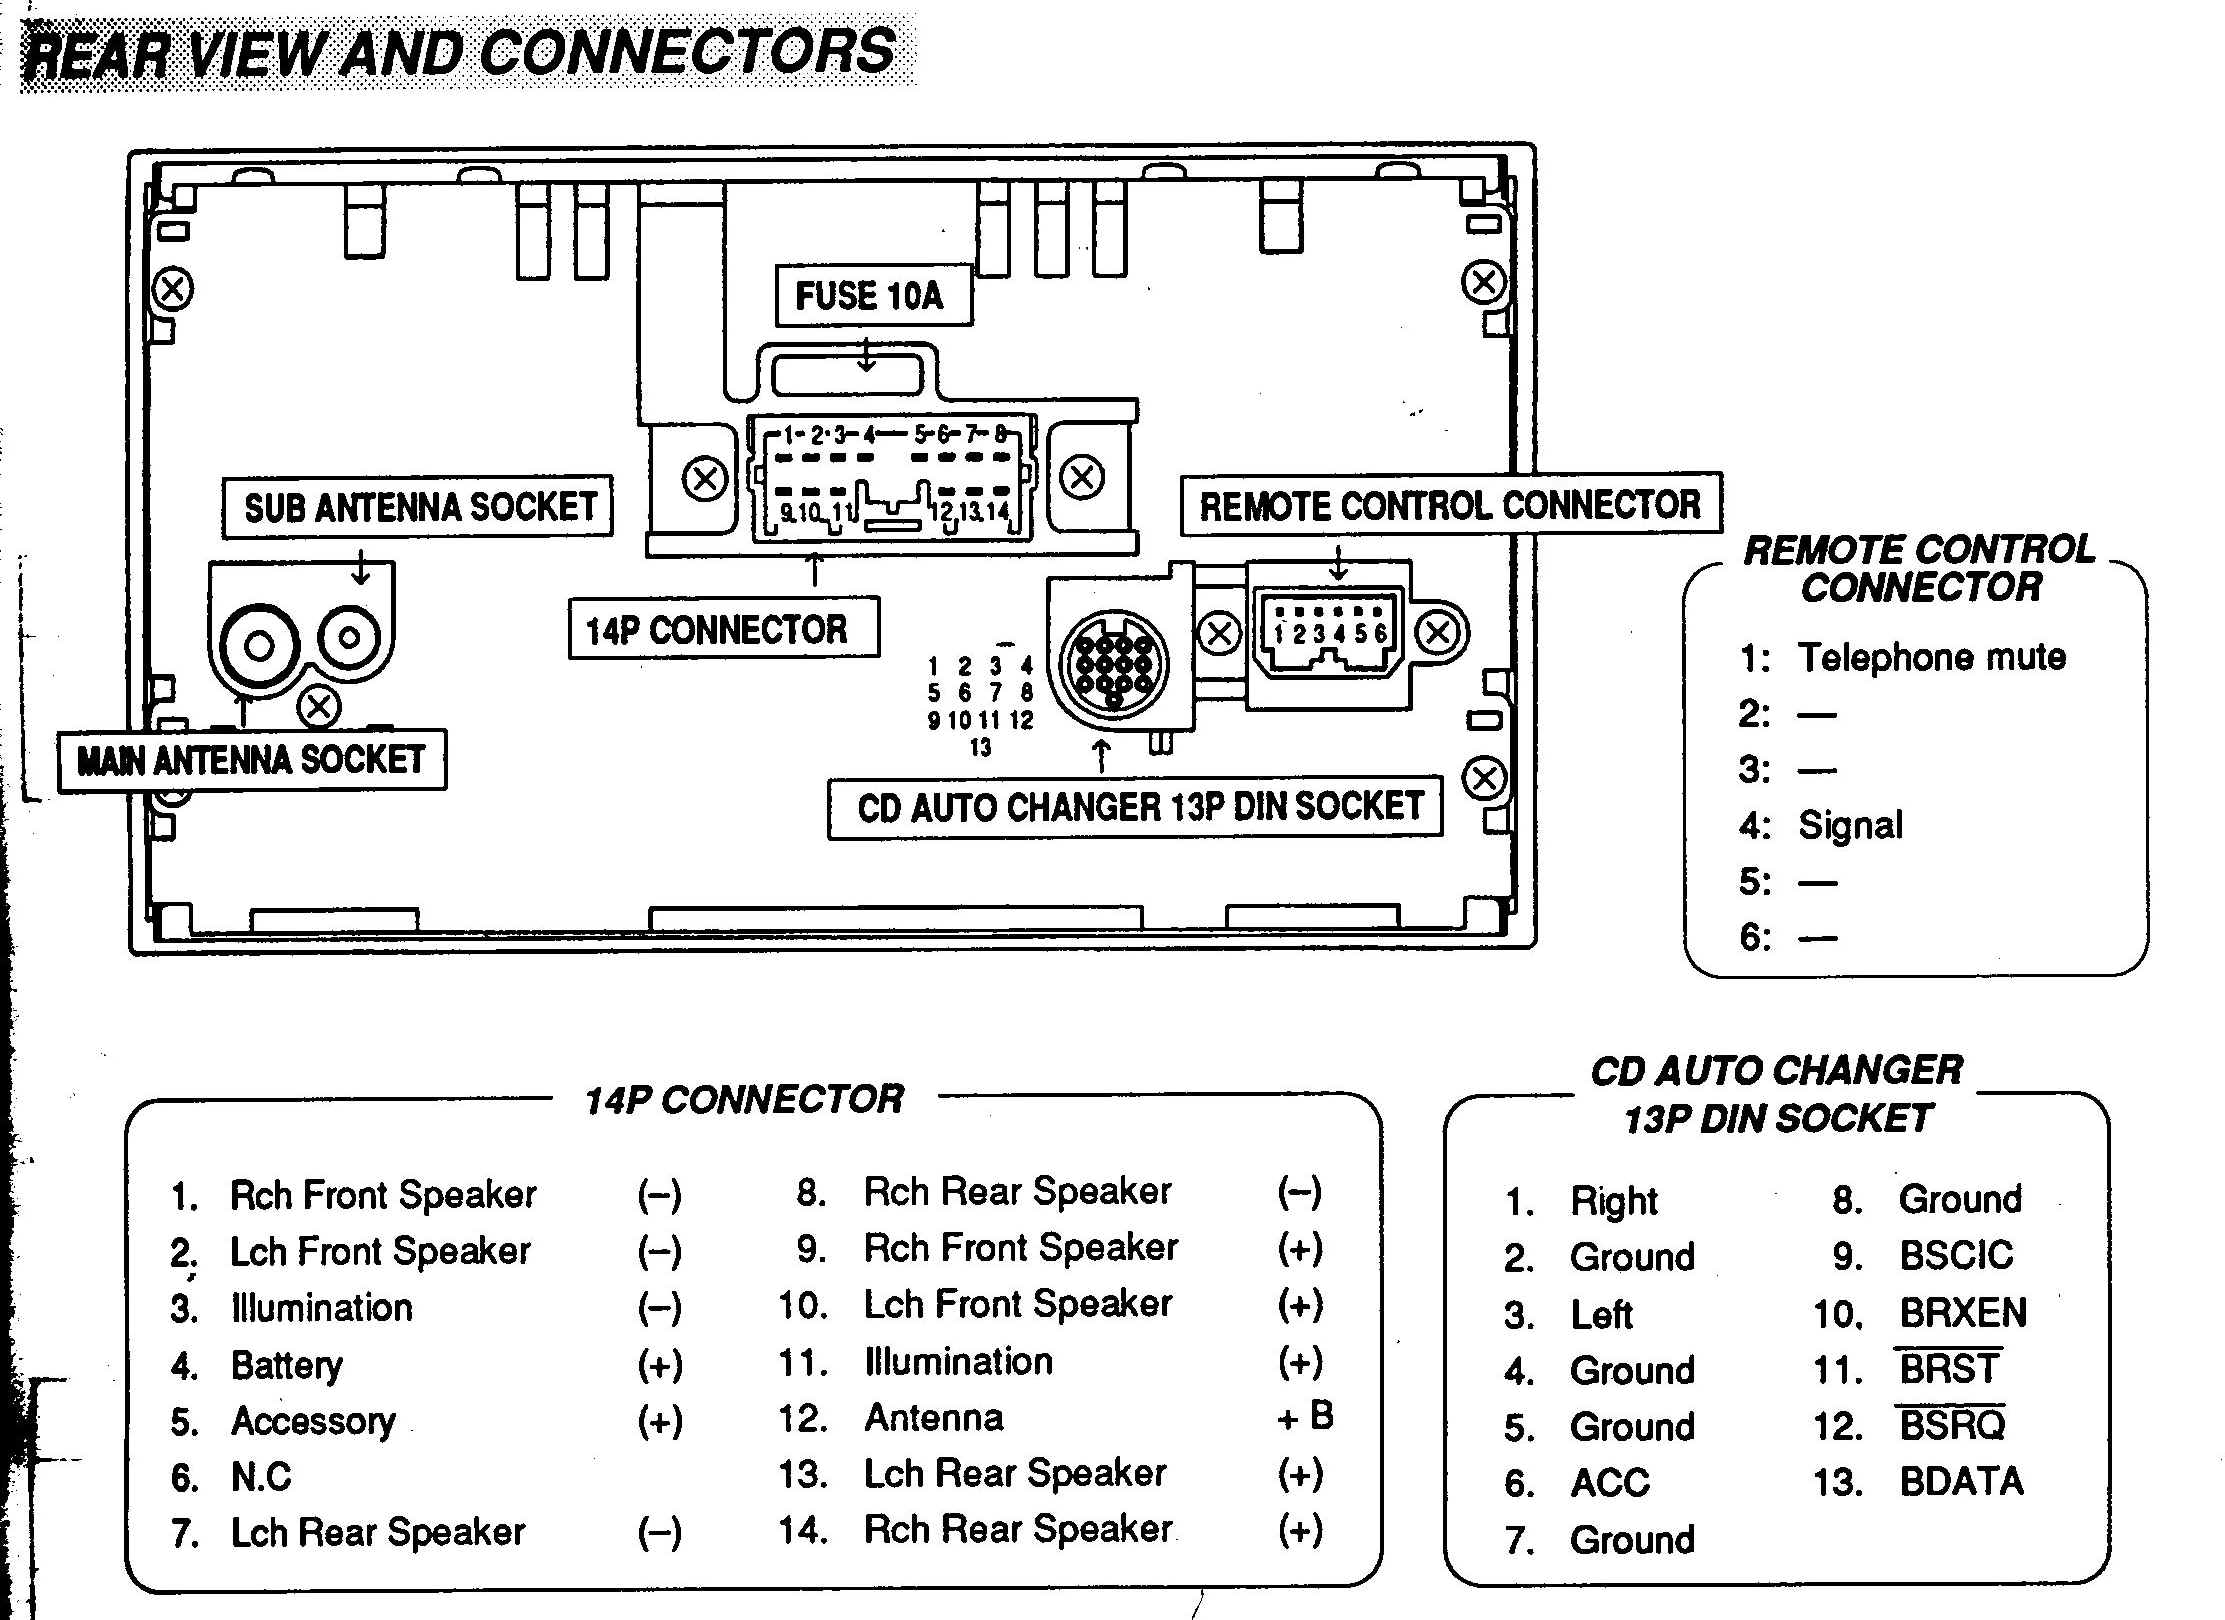 WireHarnessMit121003 amplifier wiring diagram readingrat net 1995 lincoln town car radio wiring diagram at suagrazia.org